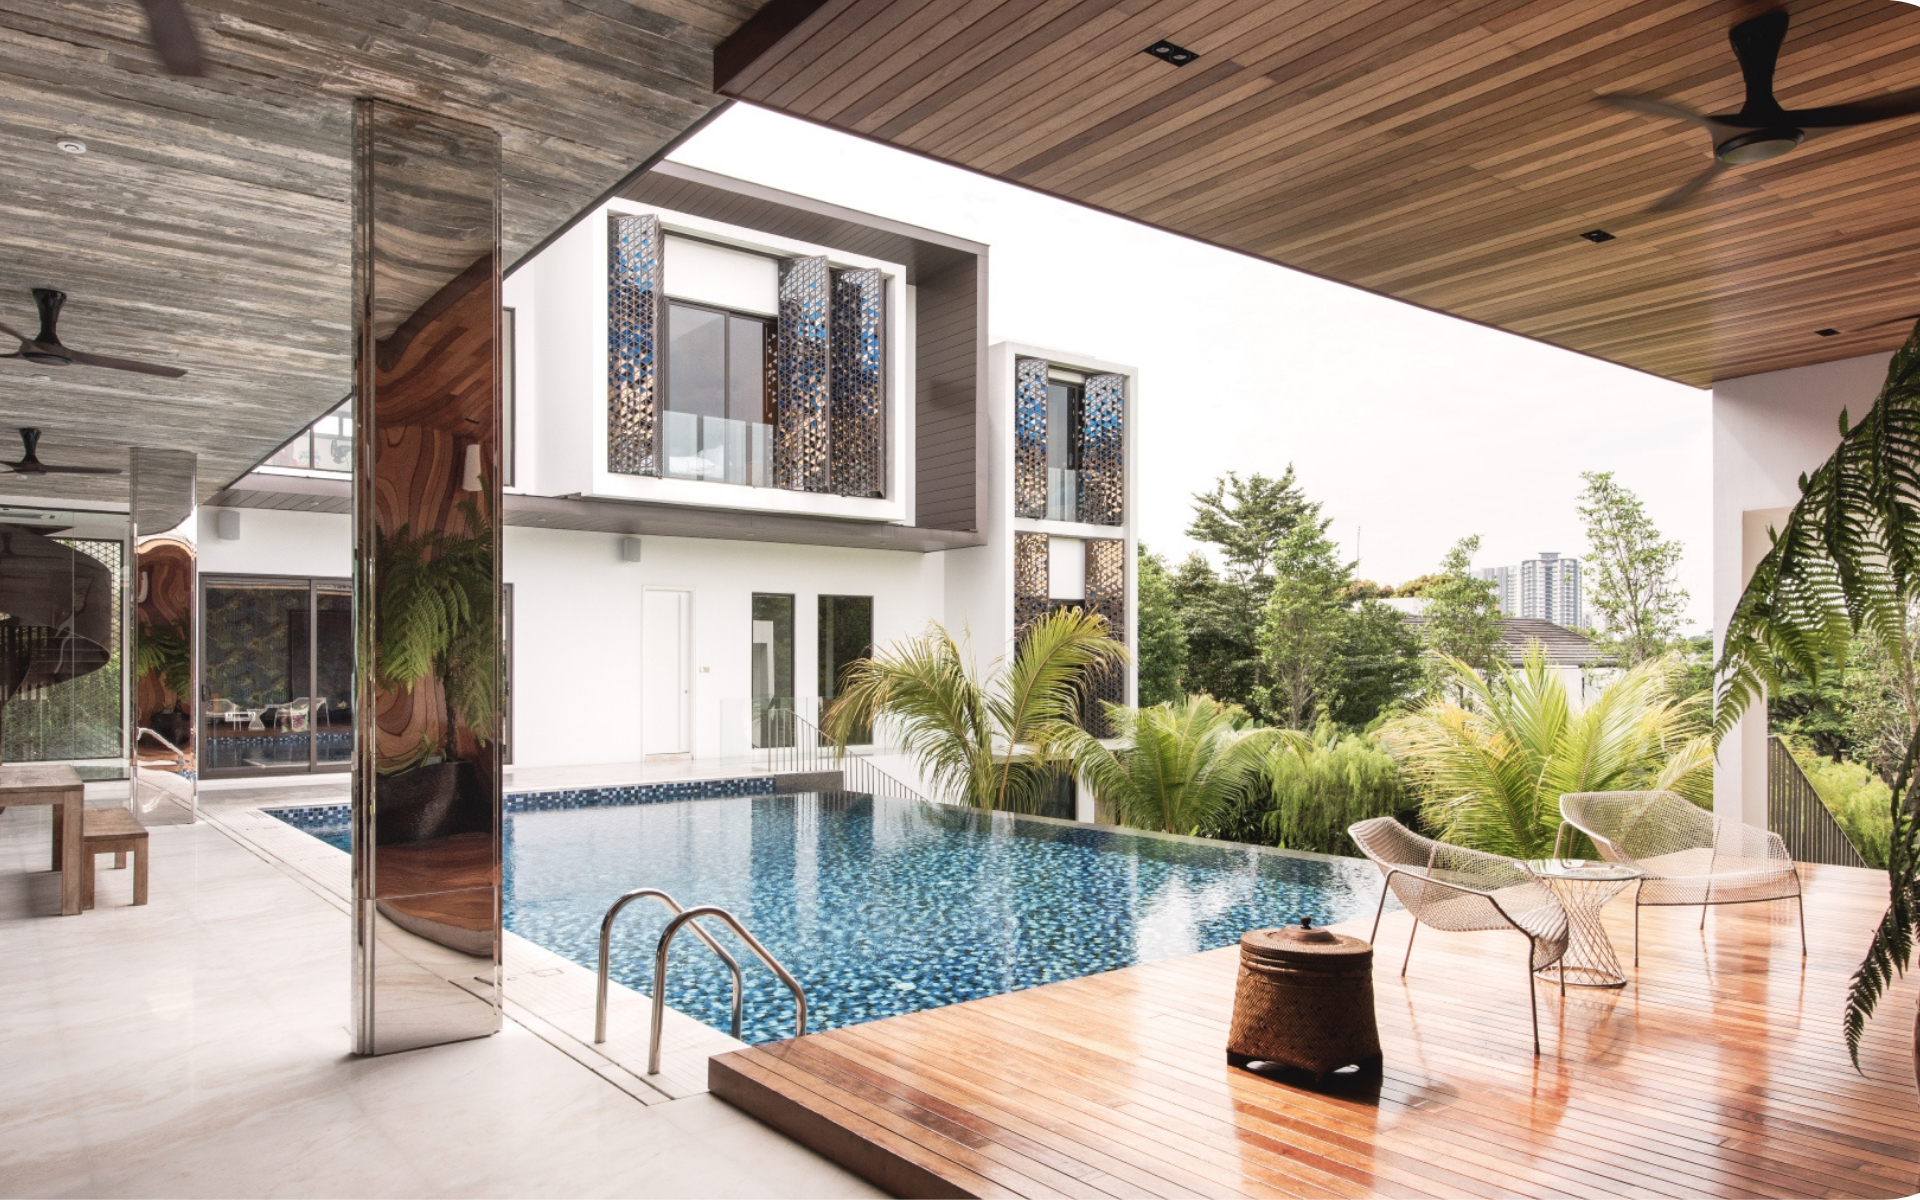 S/LAB 10's stunning Ledang Heights project in Johor embraces the great outdoors